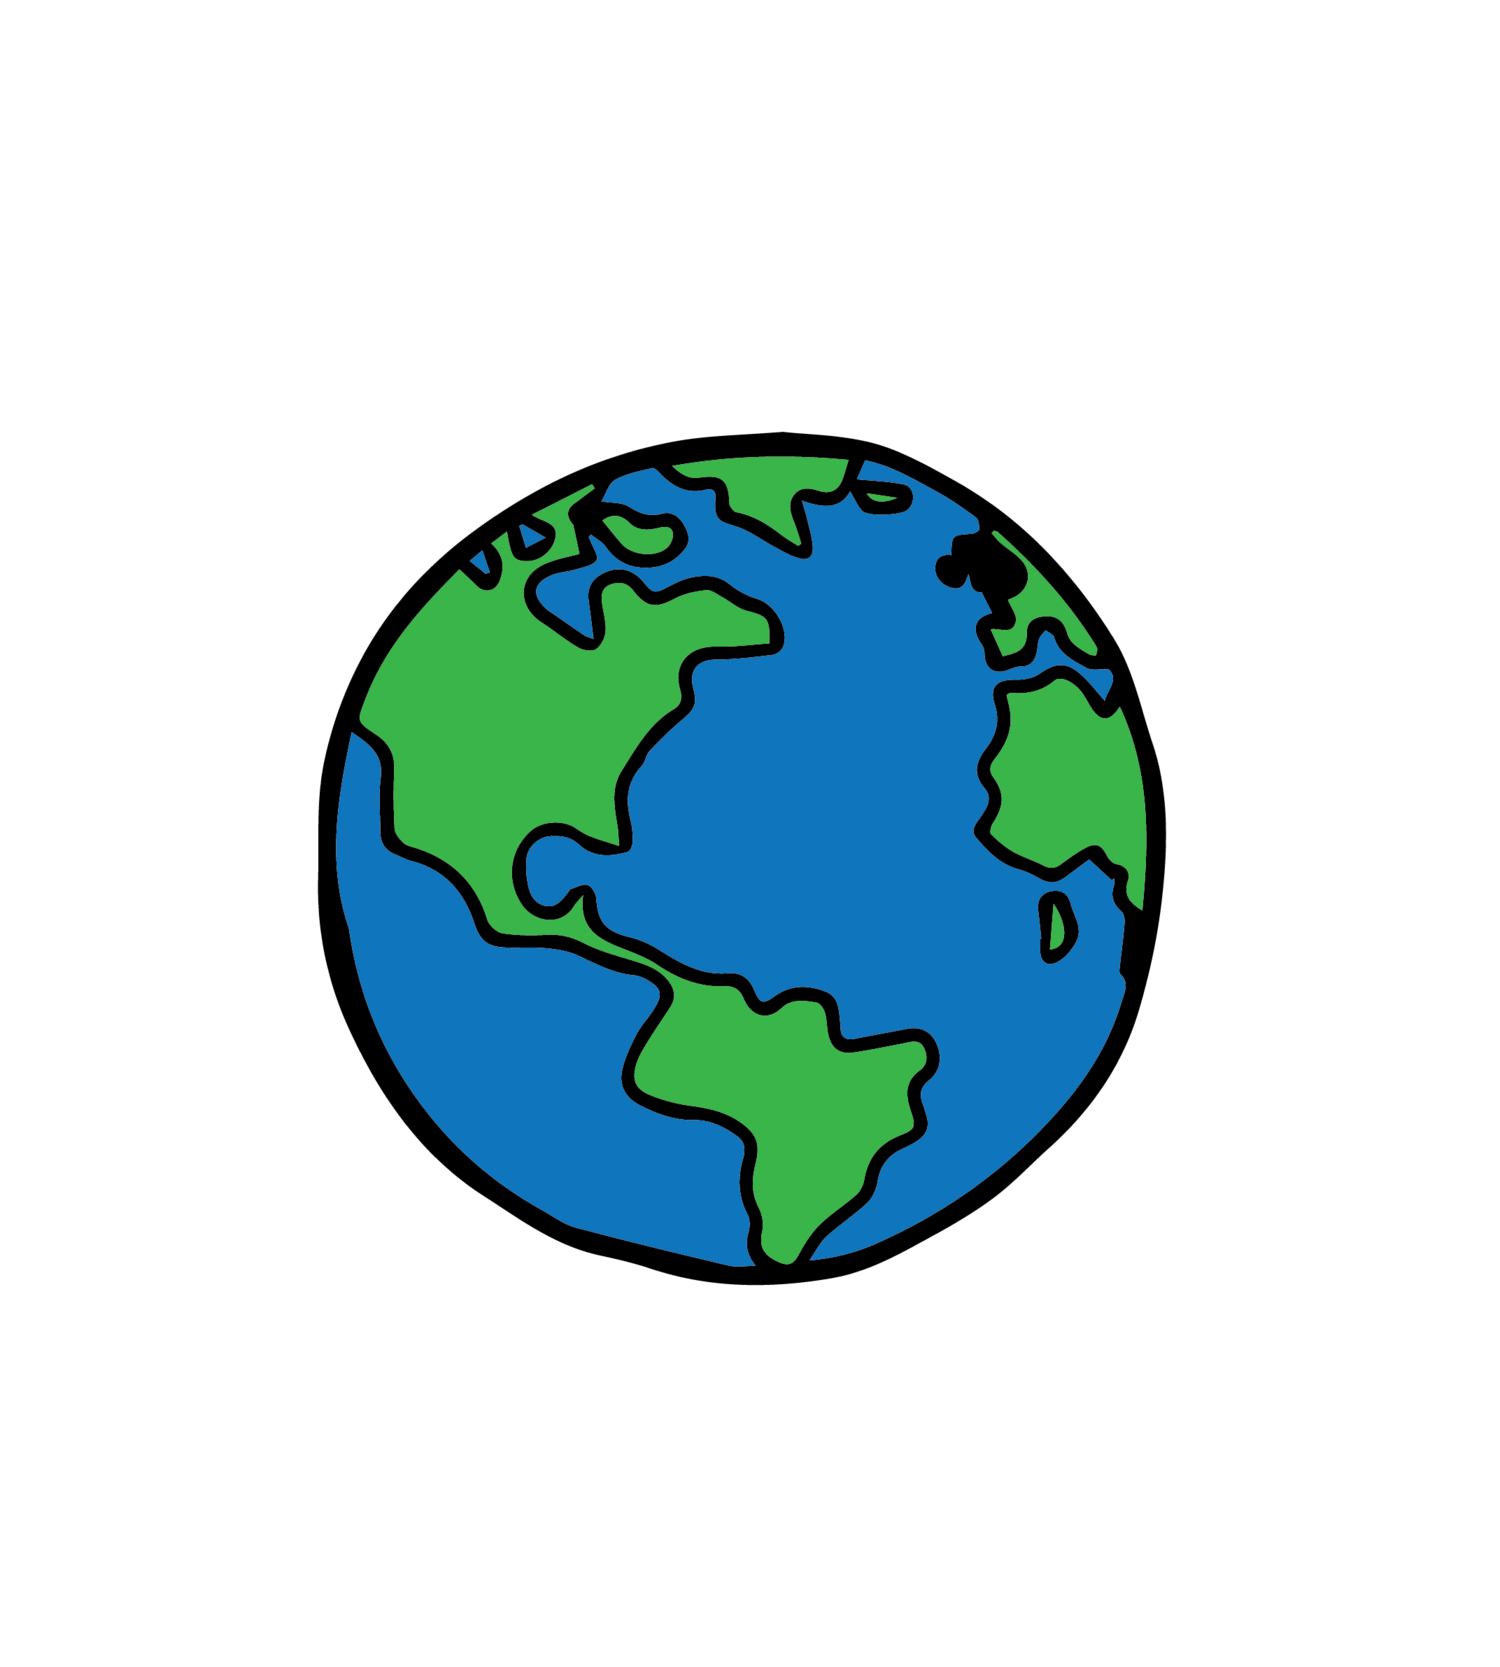 Global Guardian Designs